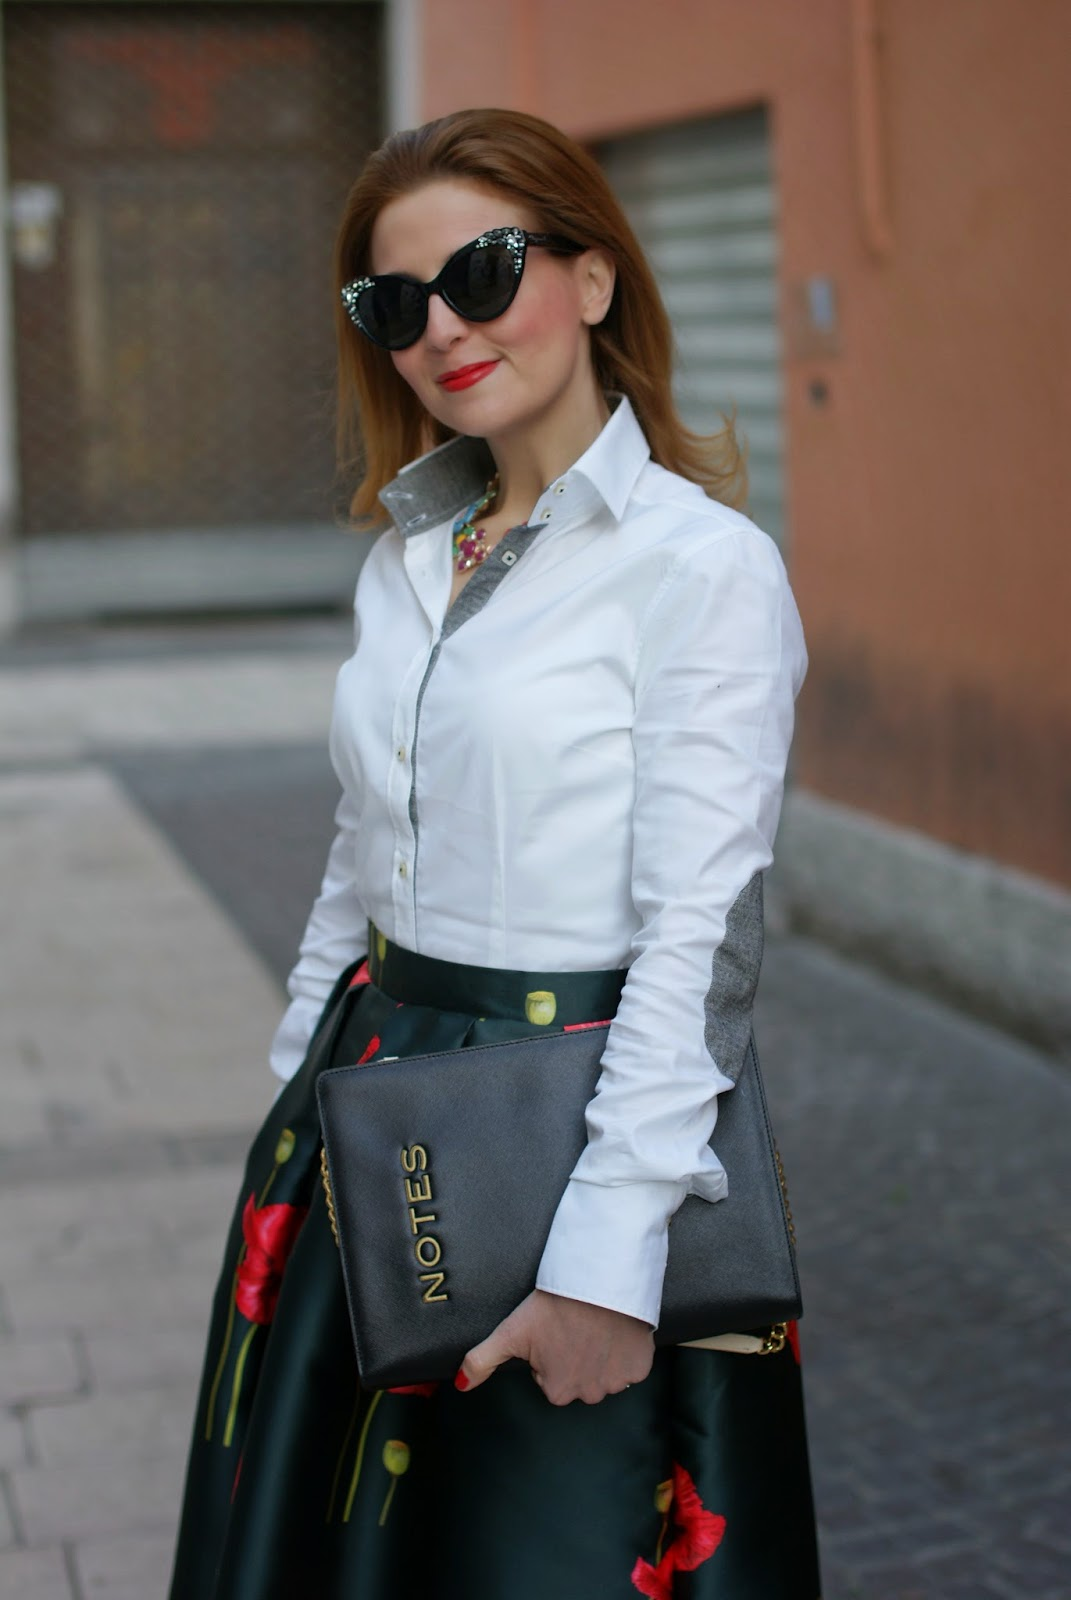 skirt and elegant shirt for office